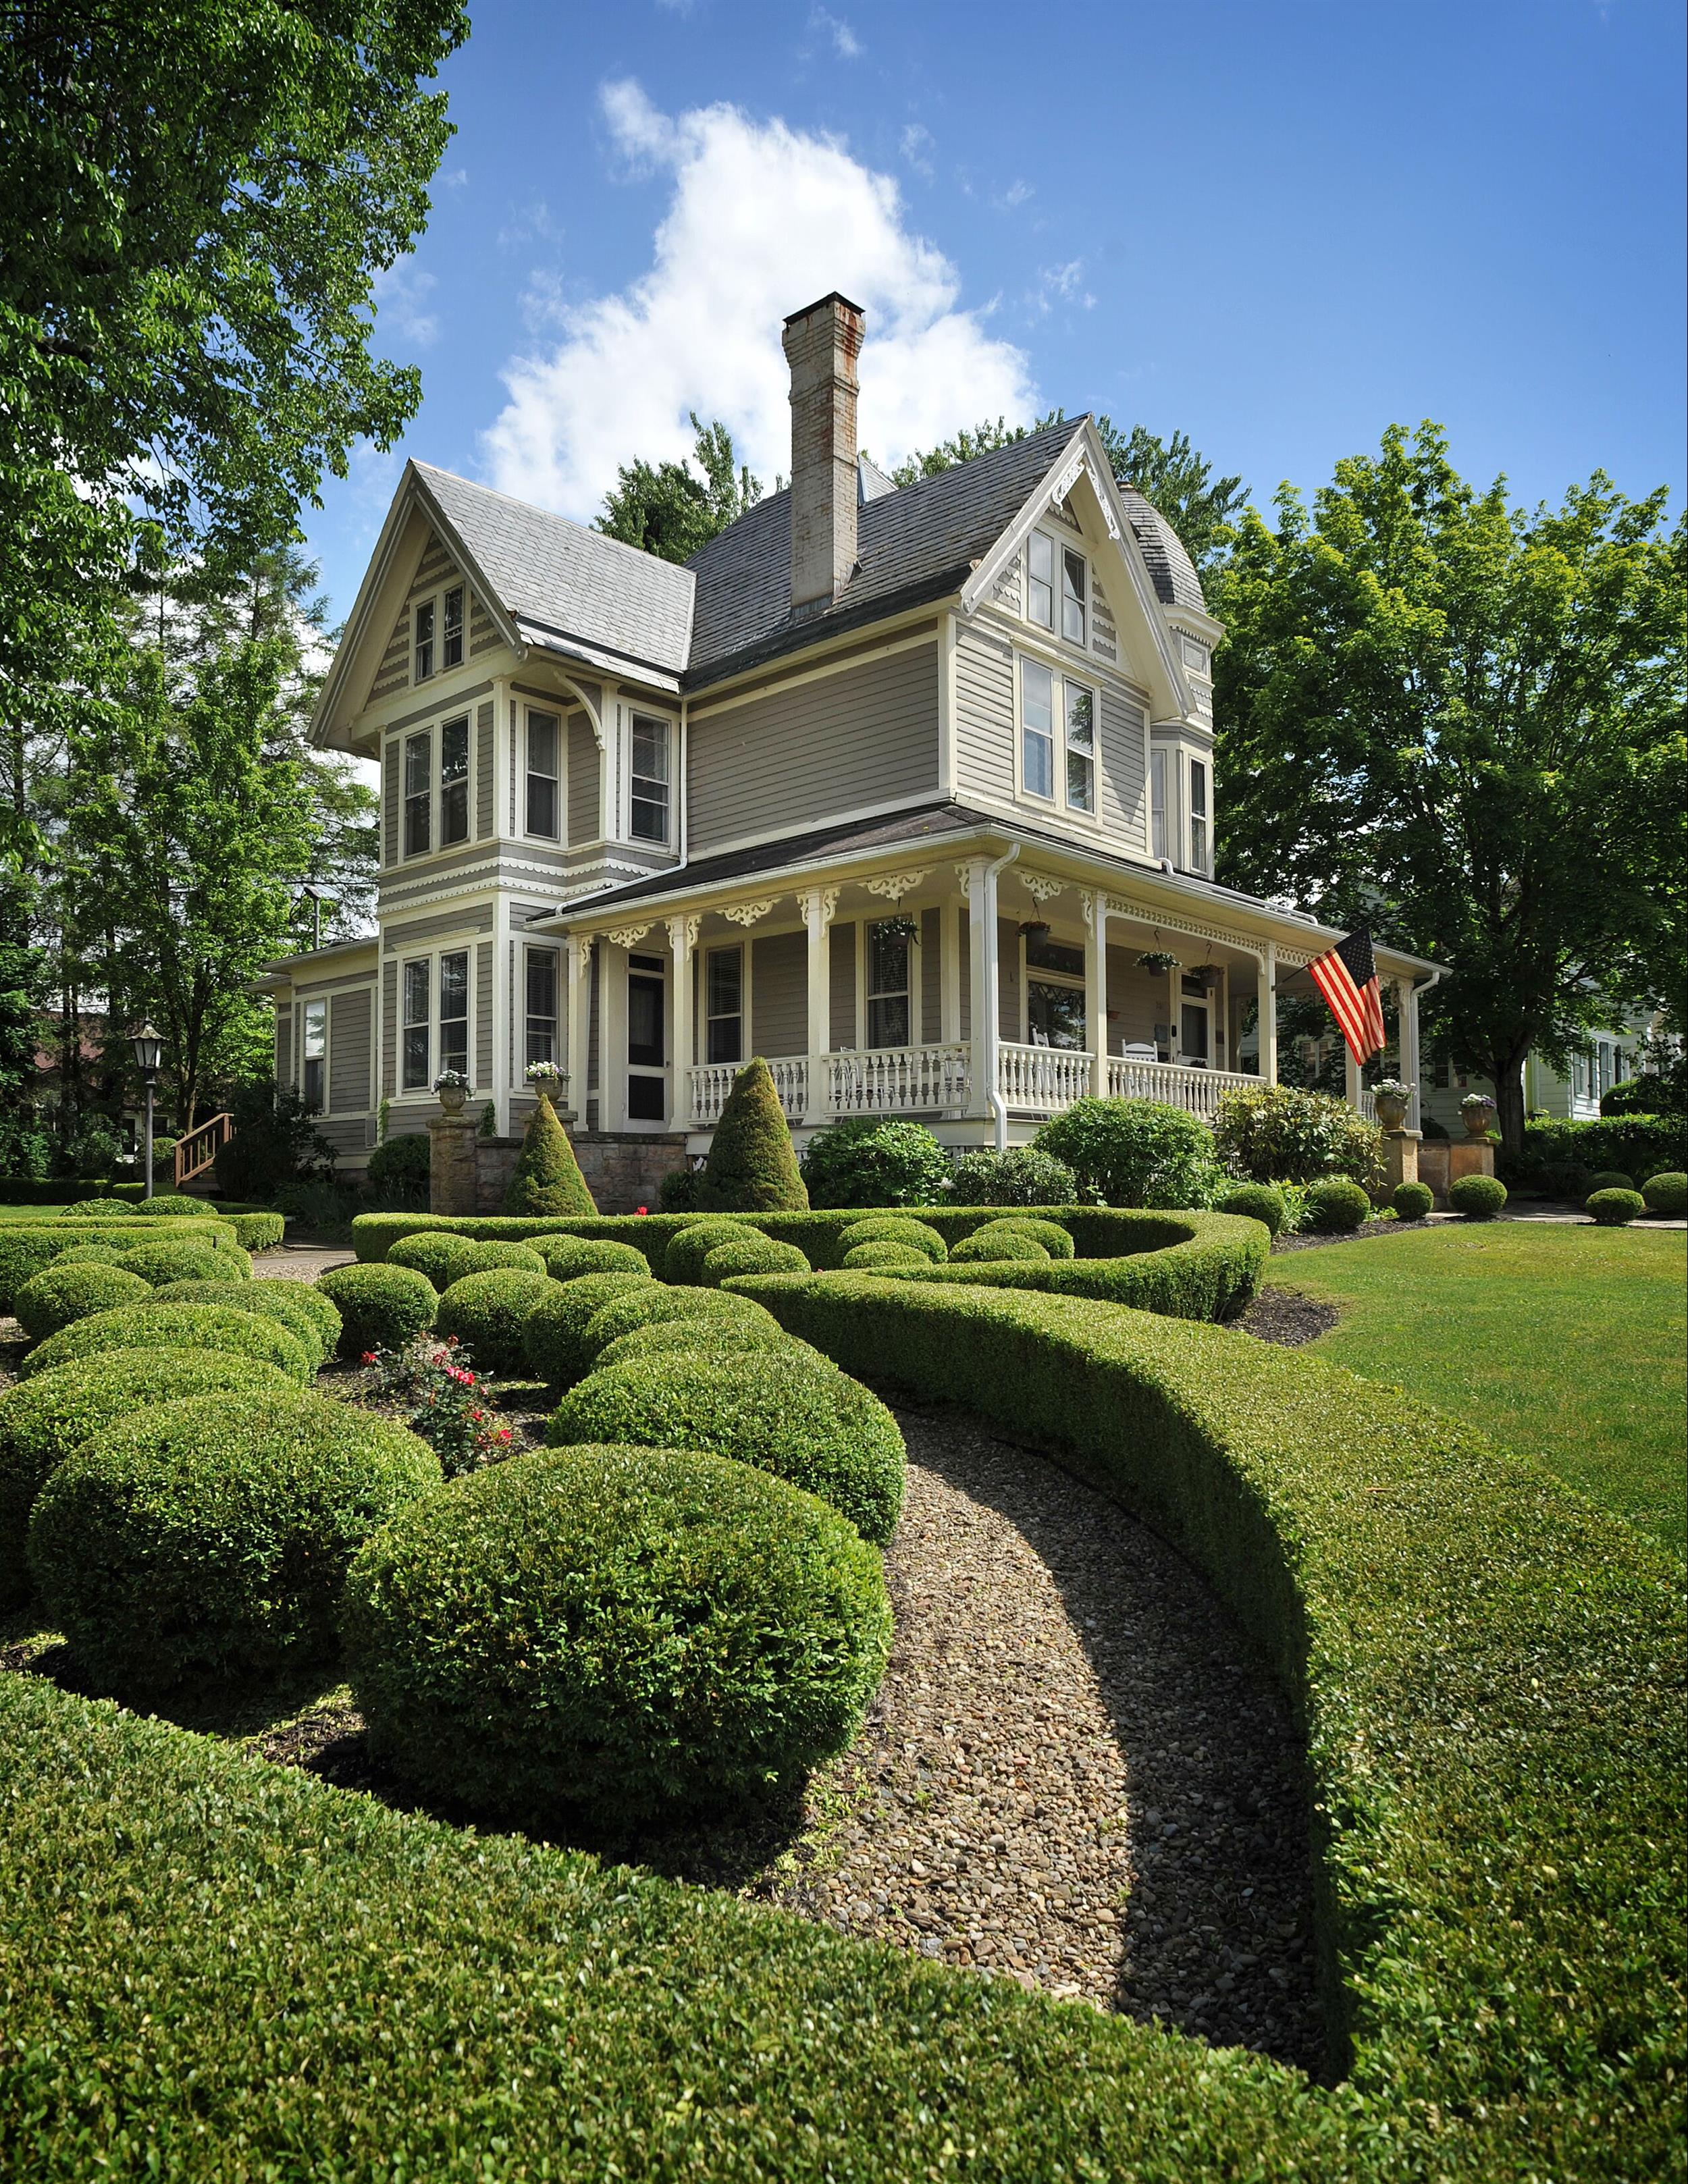 The Historic Morris Harvey House in Fayetteville, West Virginia - About Us